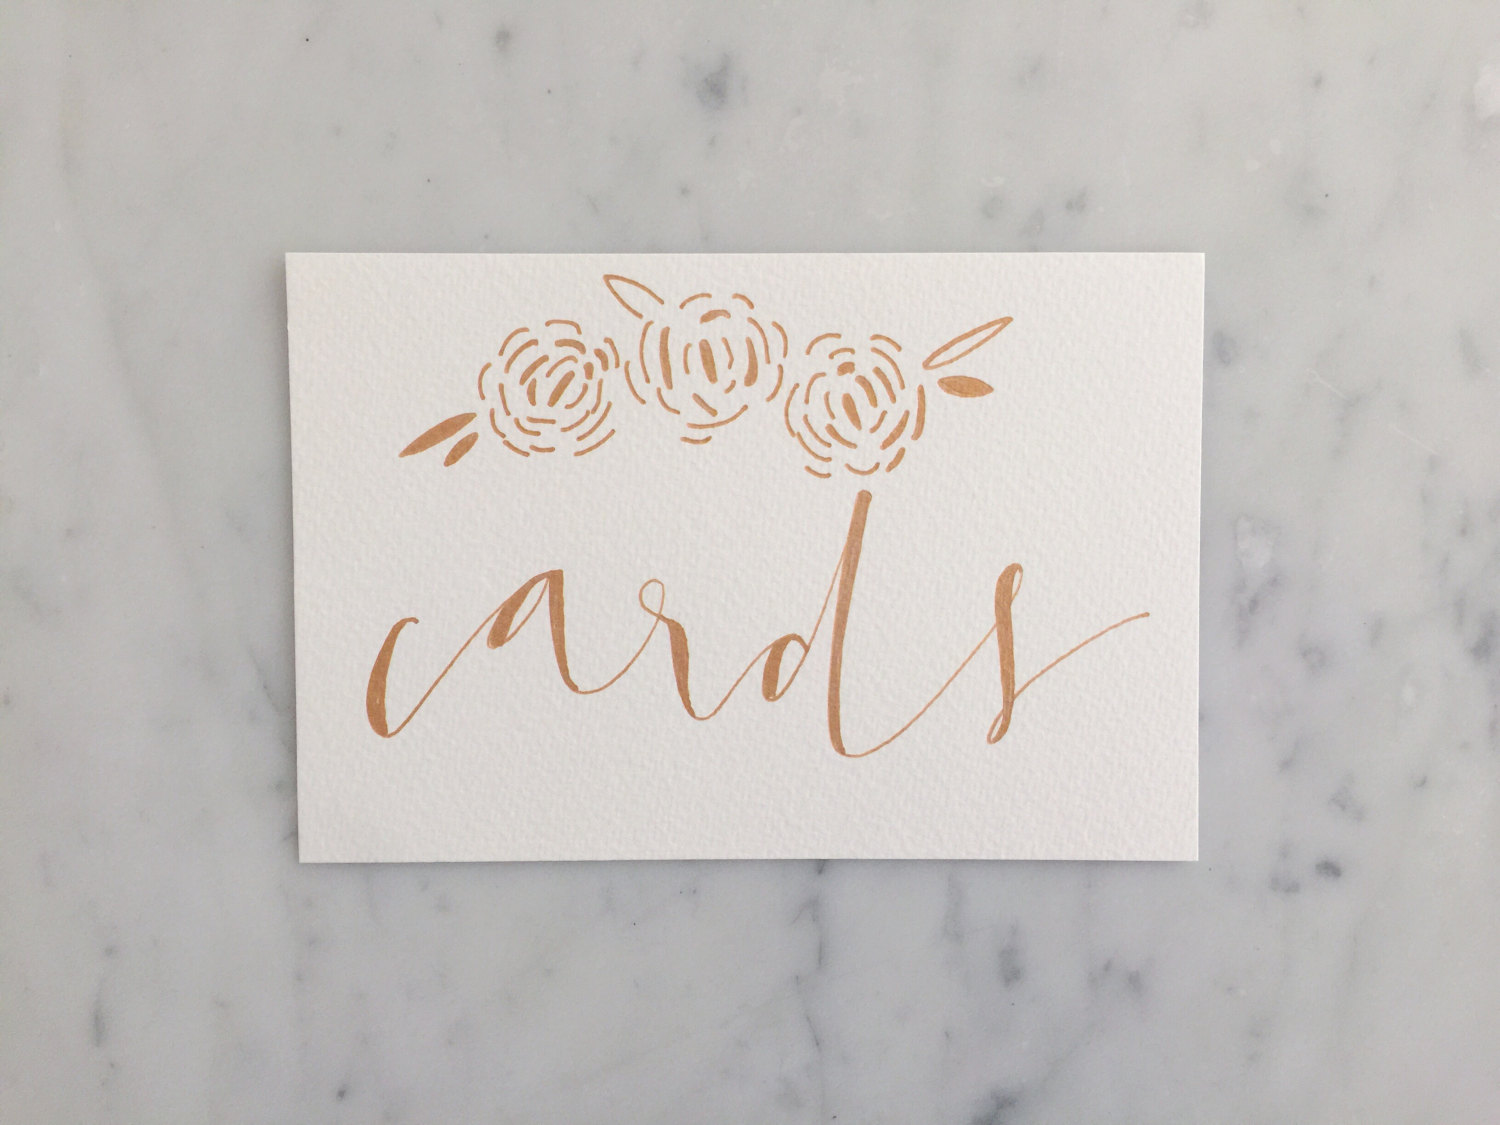 Drawn sign custom  4 / Lettering Rose